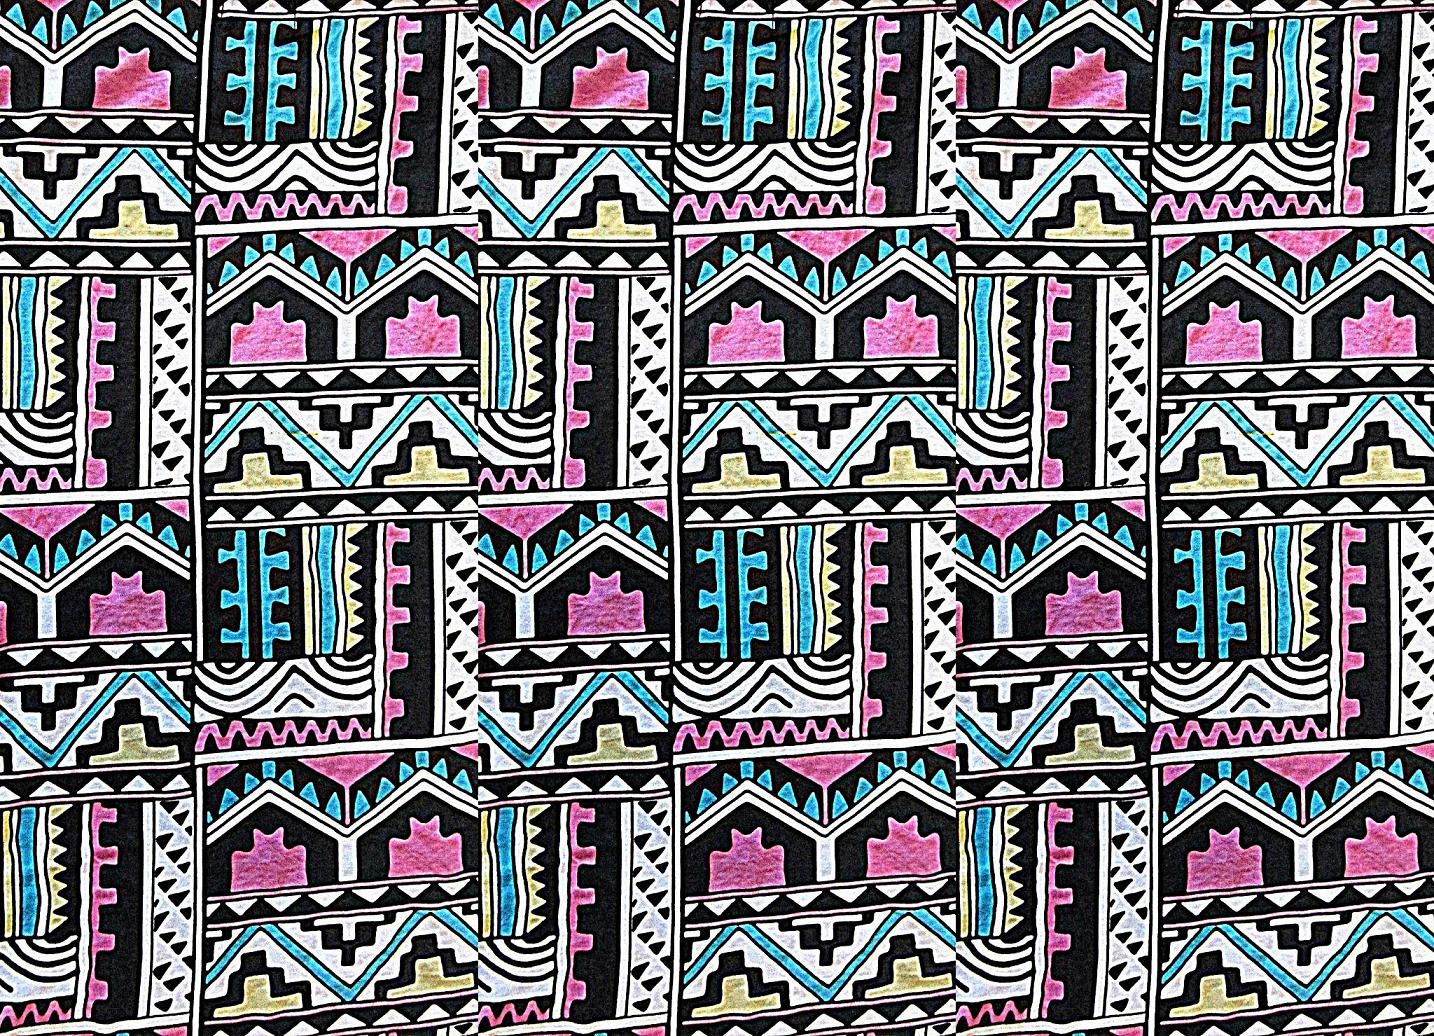 This is not Aztec